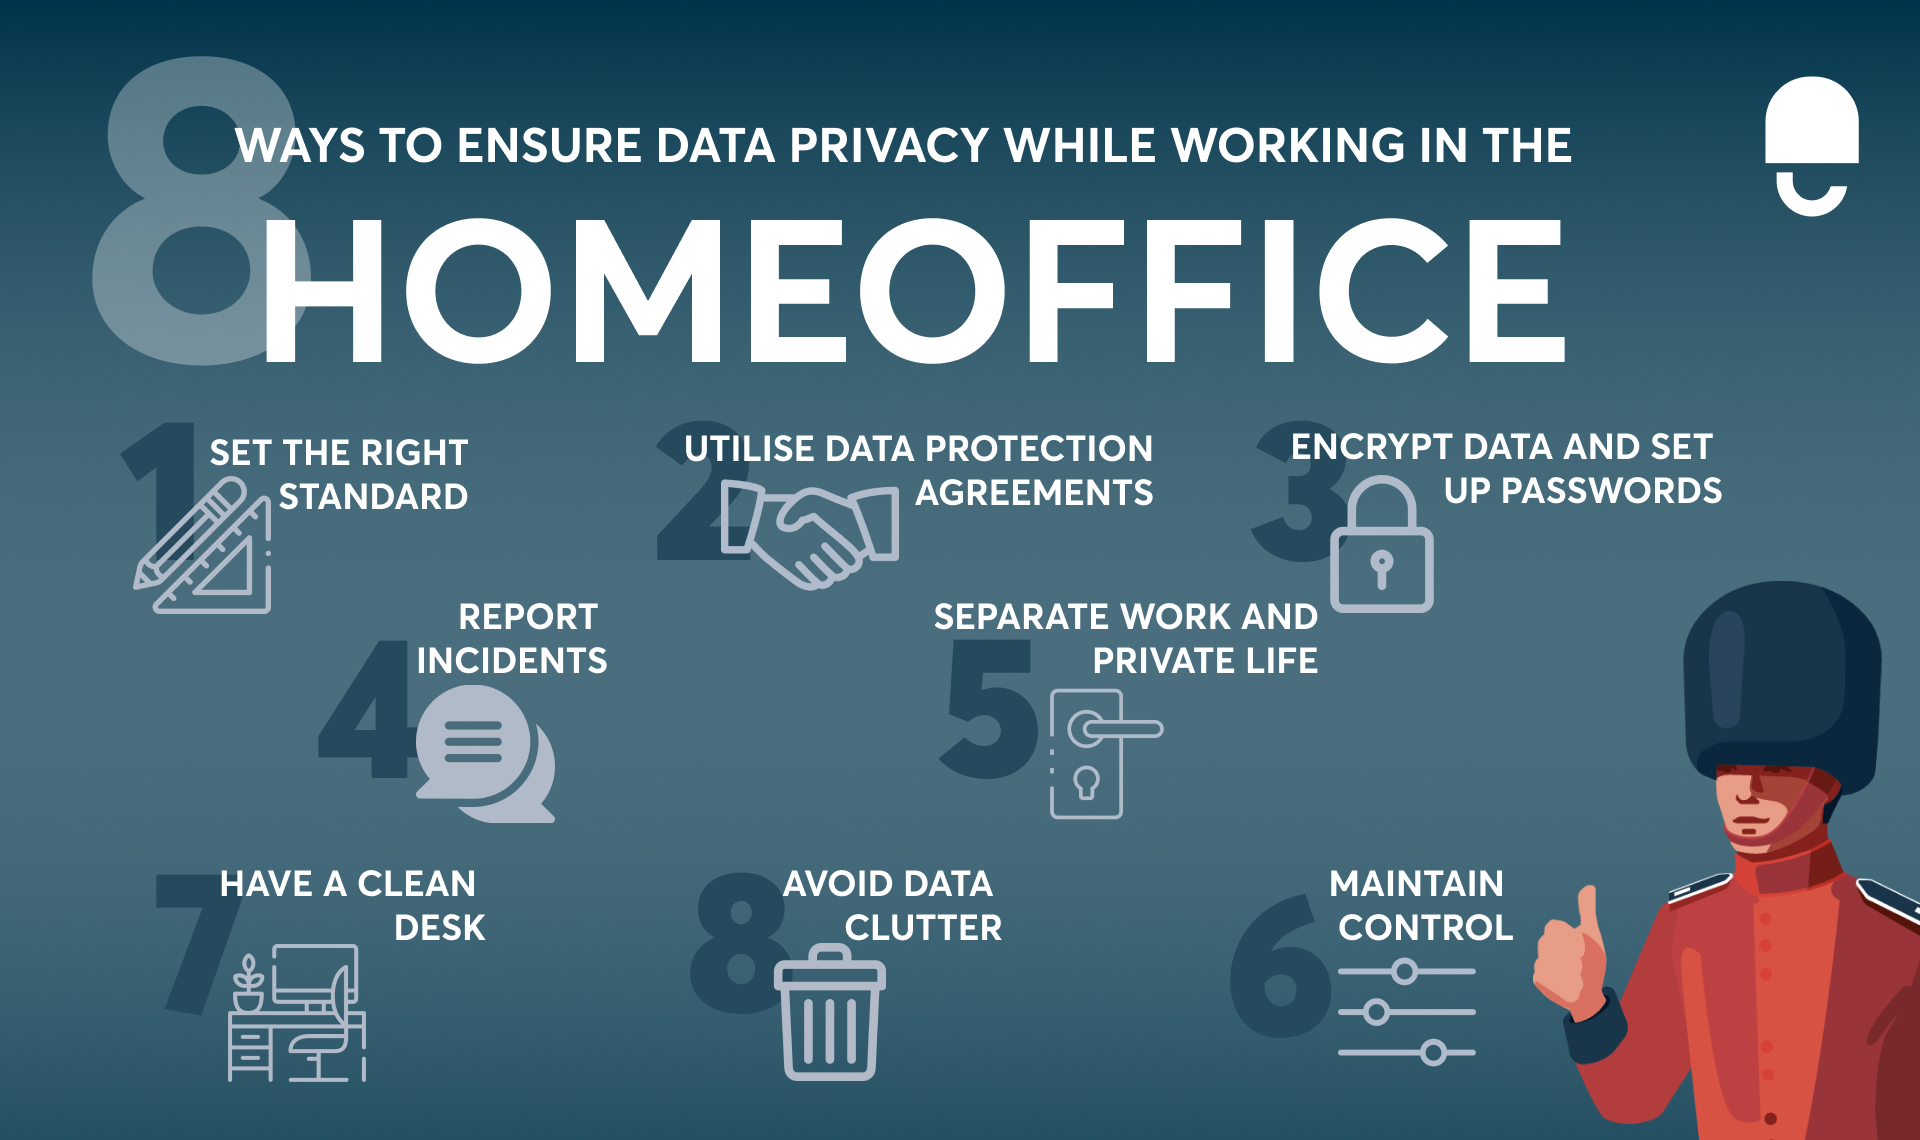 ways to ensure data privacy in the homeoffice